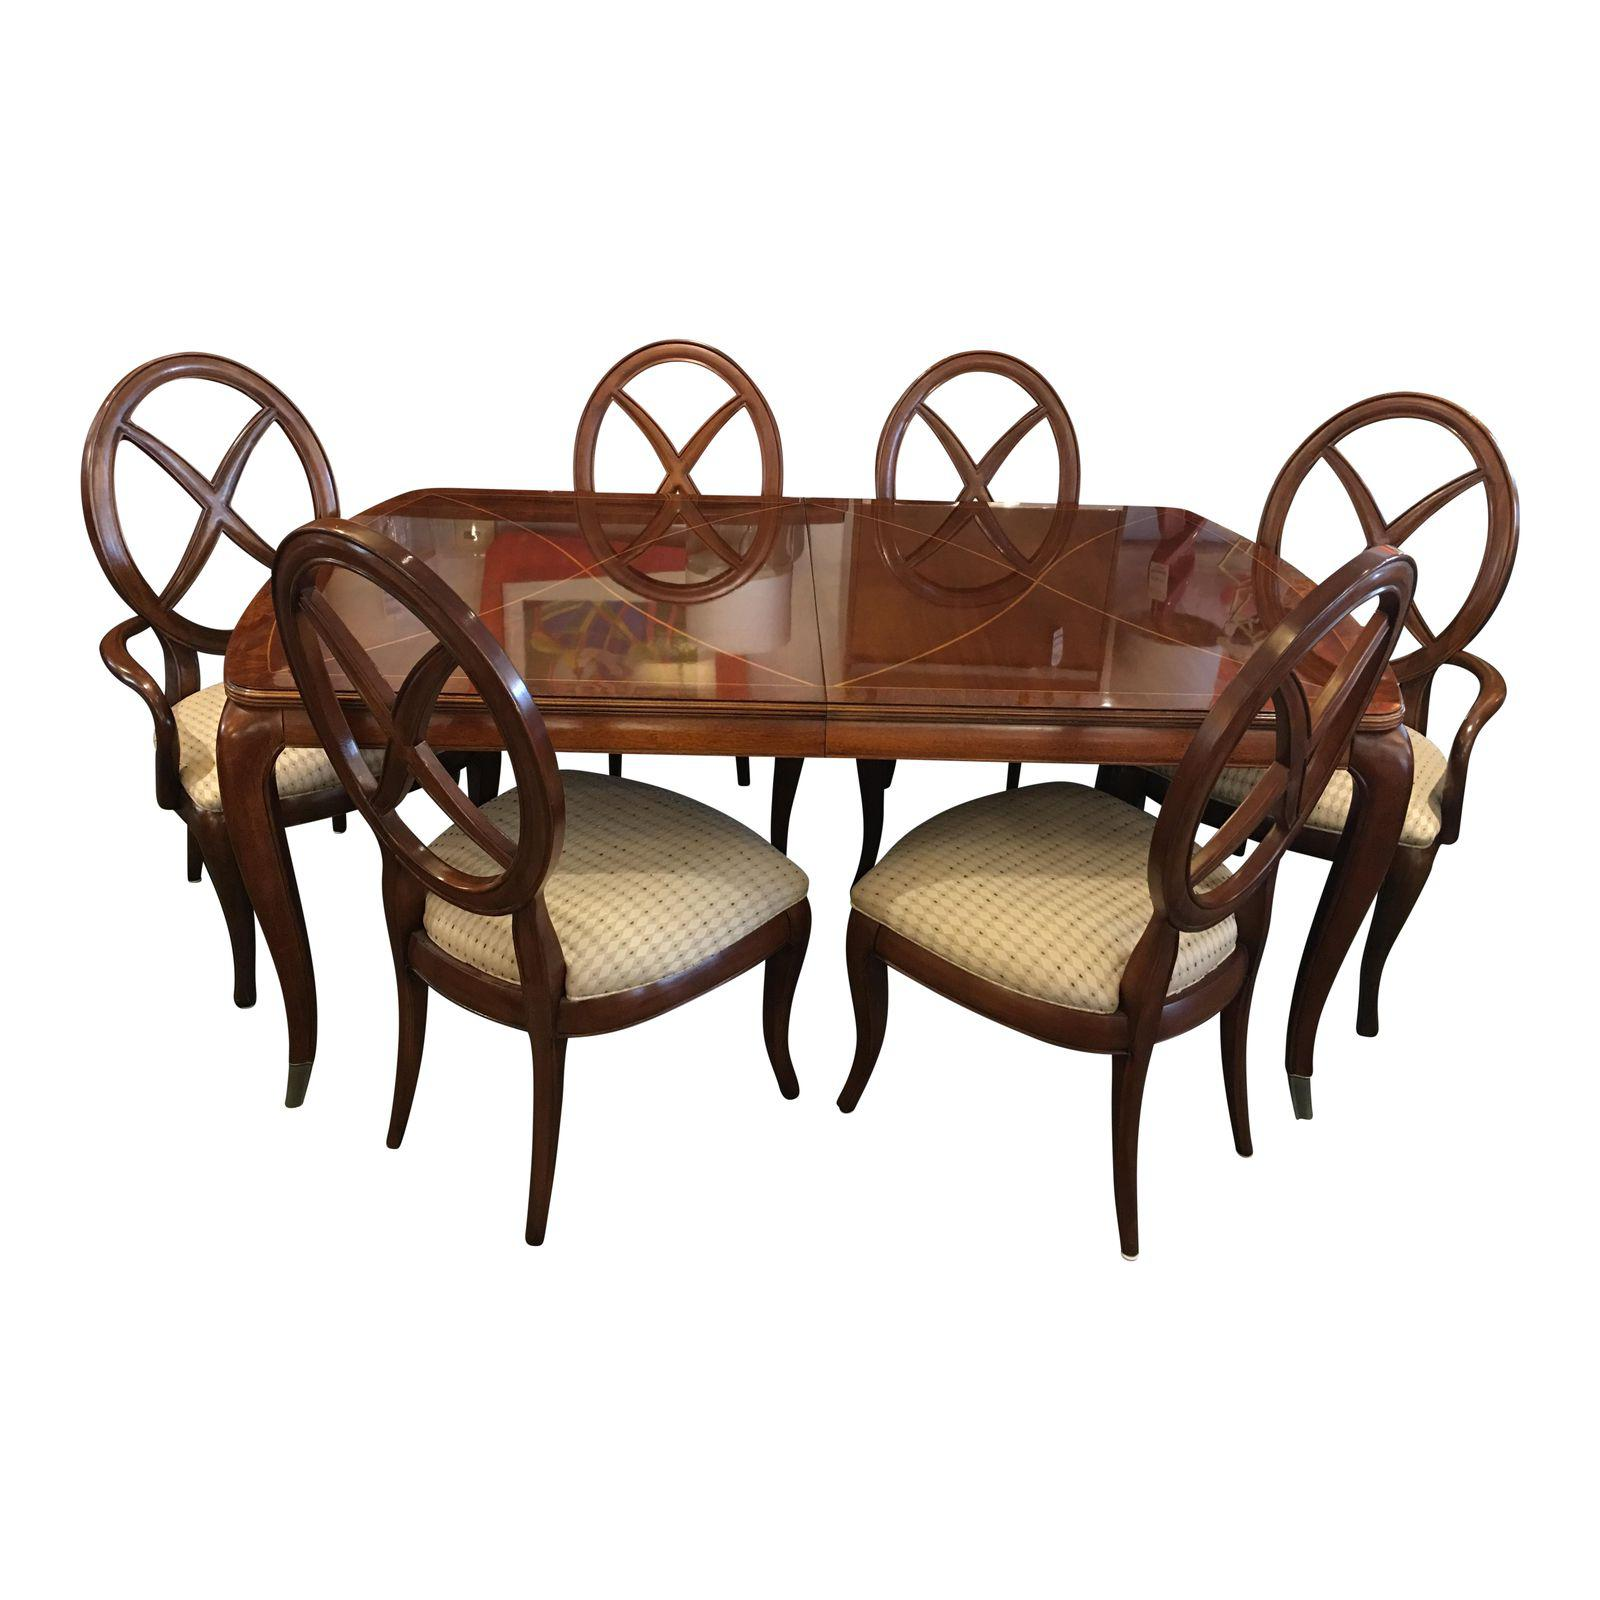 Thomasville U2013 Bogart Collection Dining Table + 6 Chairs